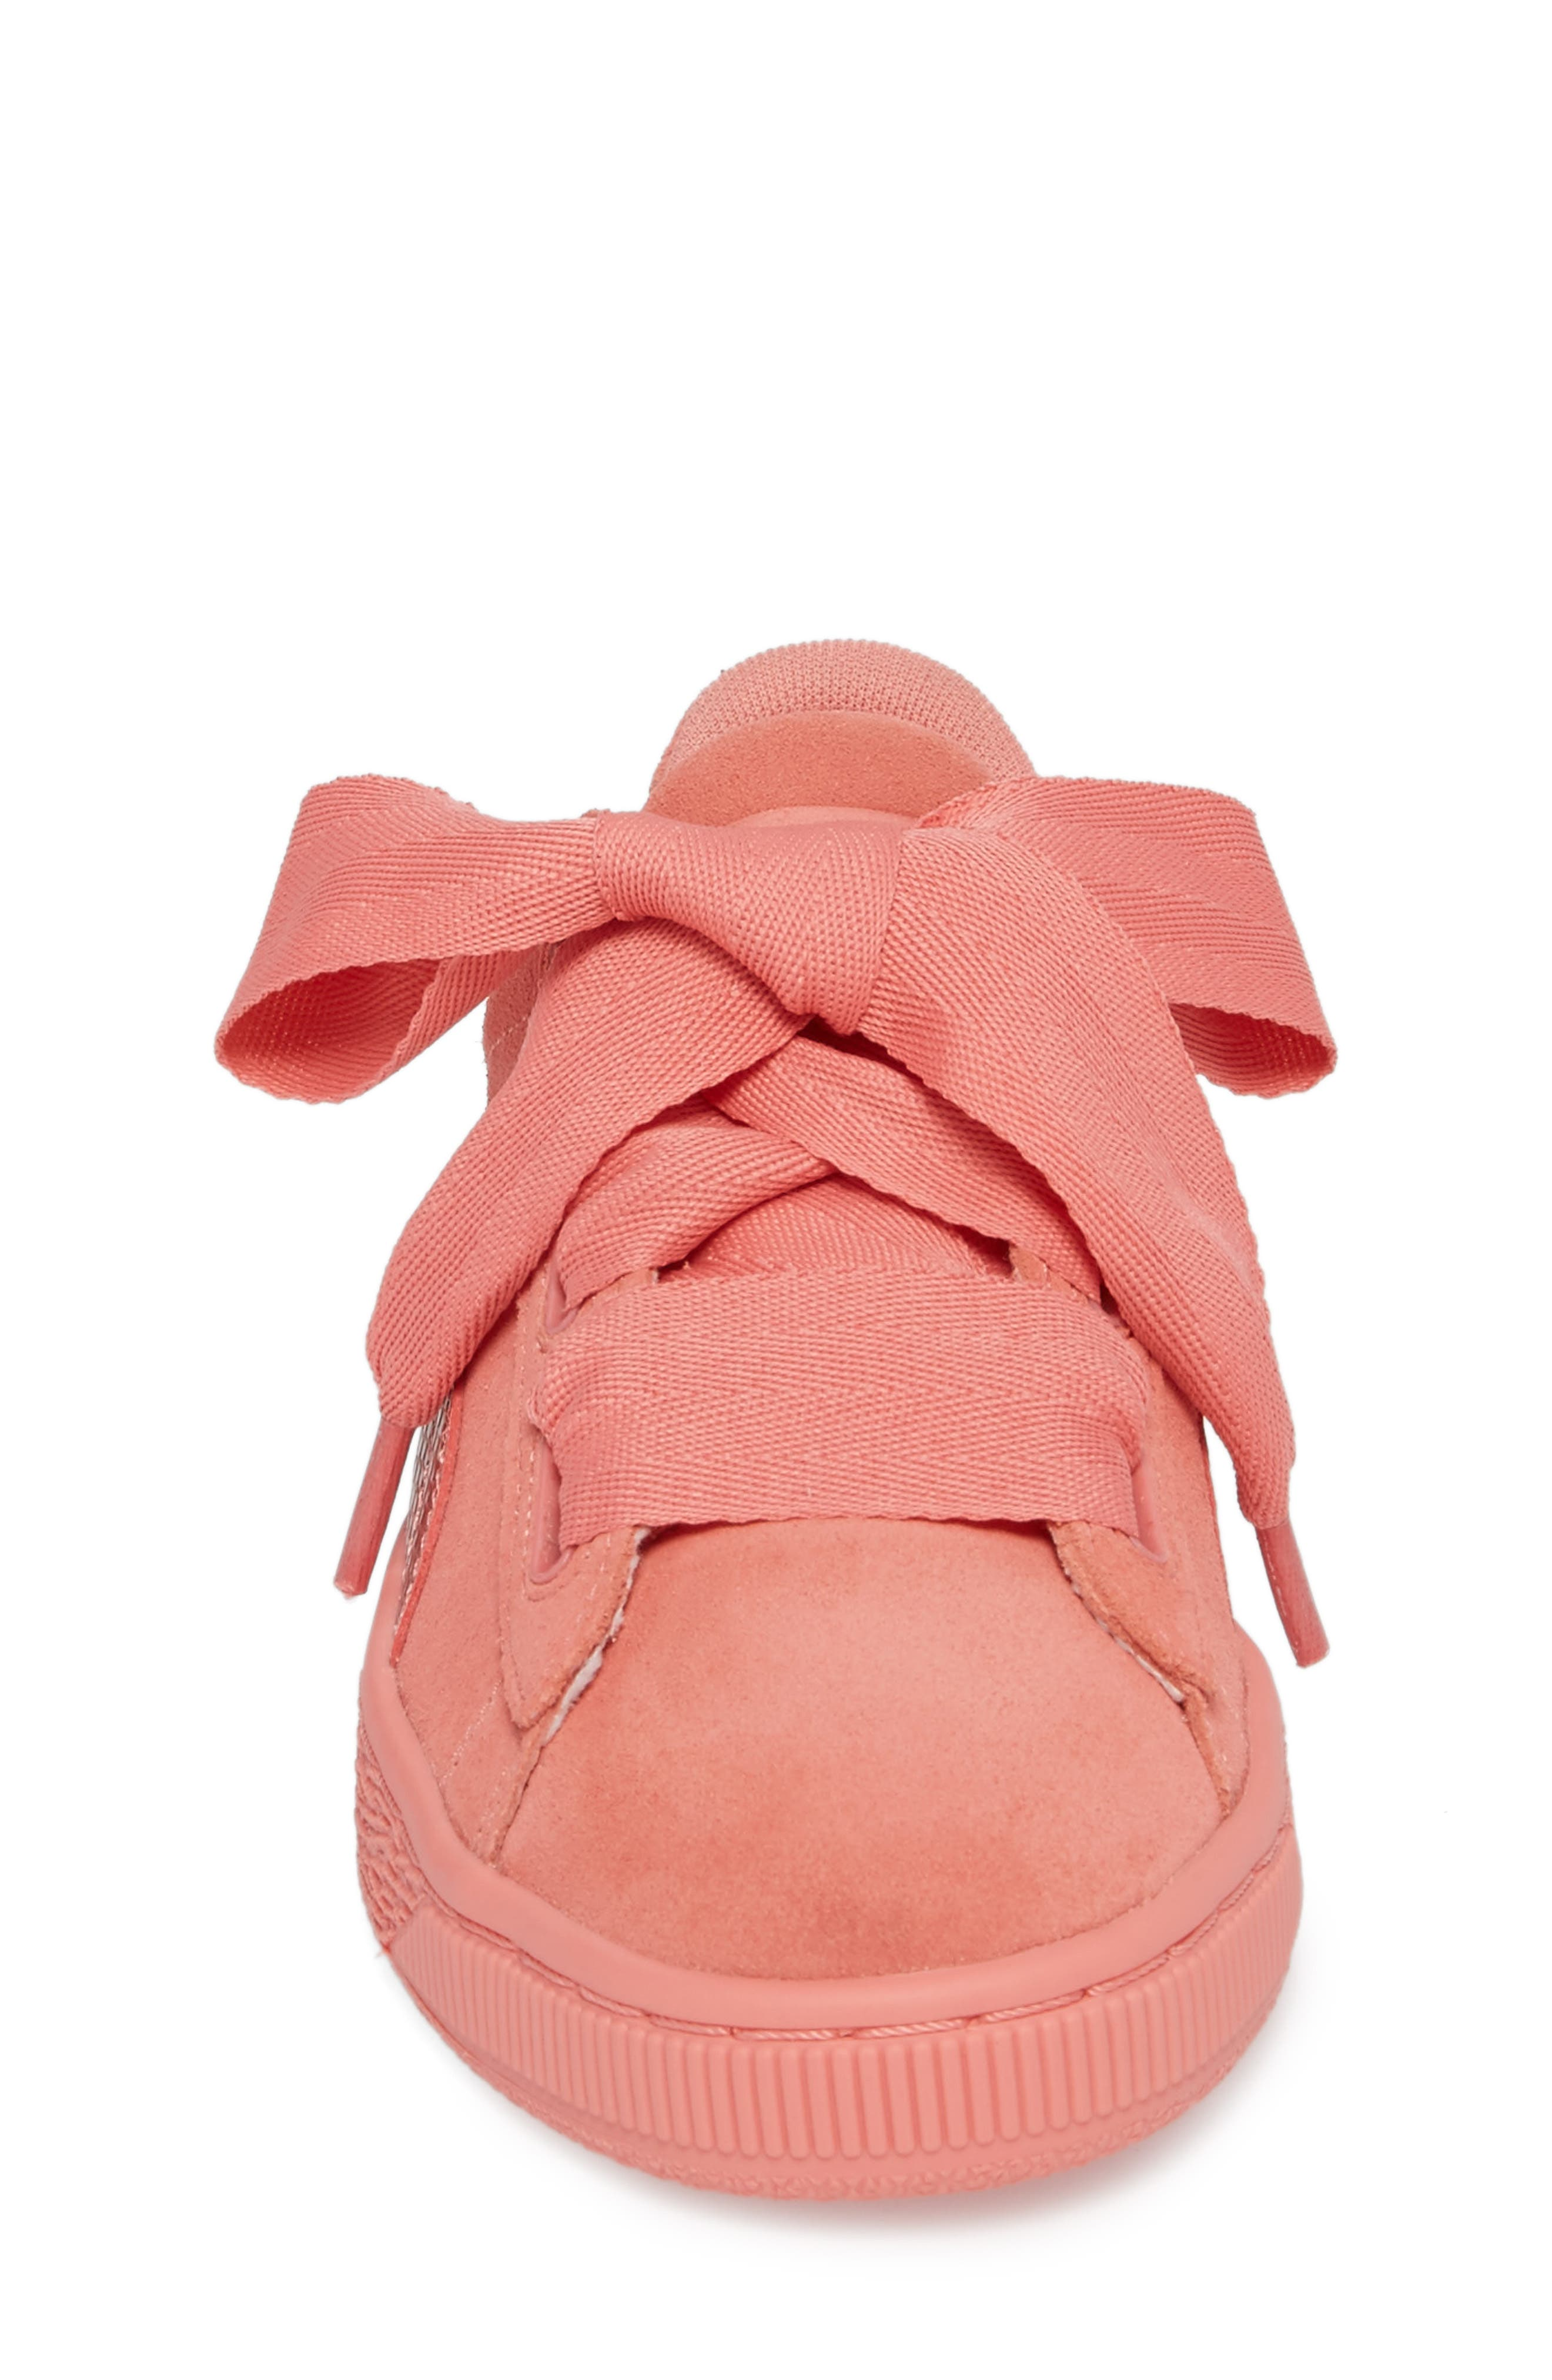 Suede Heart Sneaker,                             Alternate thumbnail 4, color,                             Shell Pink/ Shell Pink